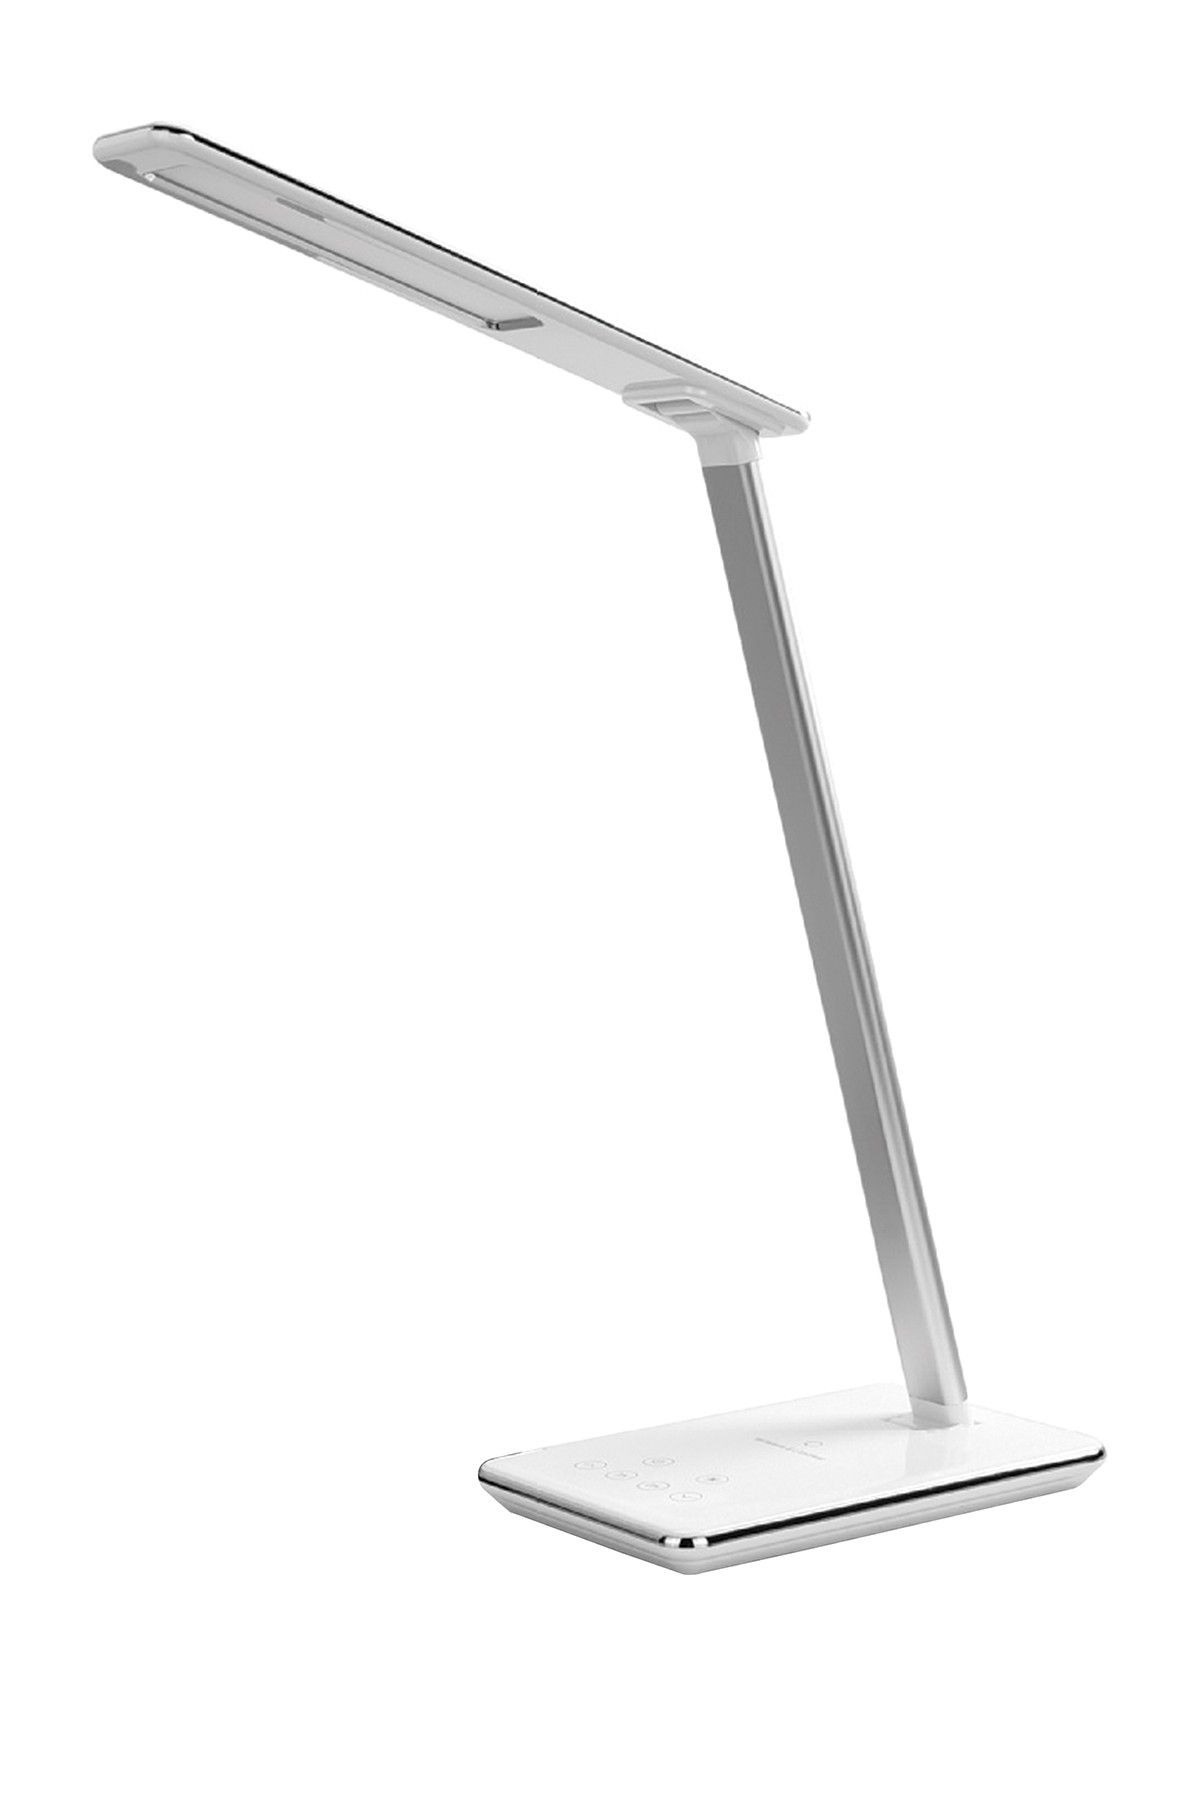 Supersonic Led Desk Lamp With Qi Wireless Charger White Desk Lamp Lamp Led Desk Lamp